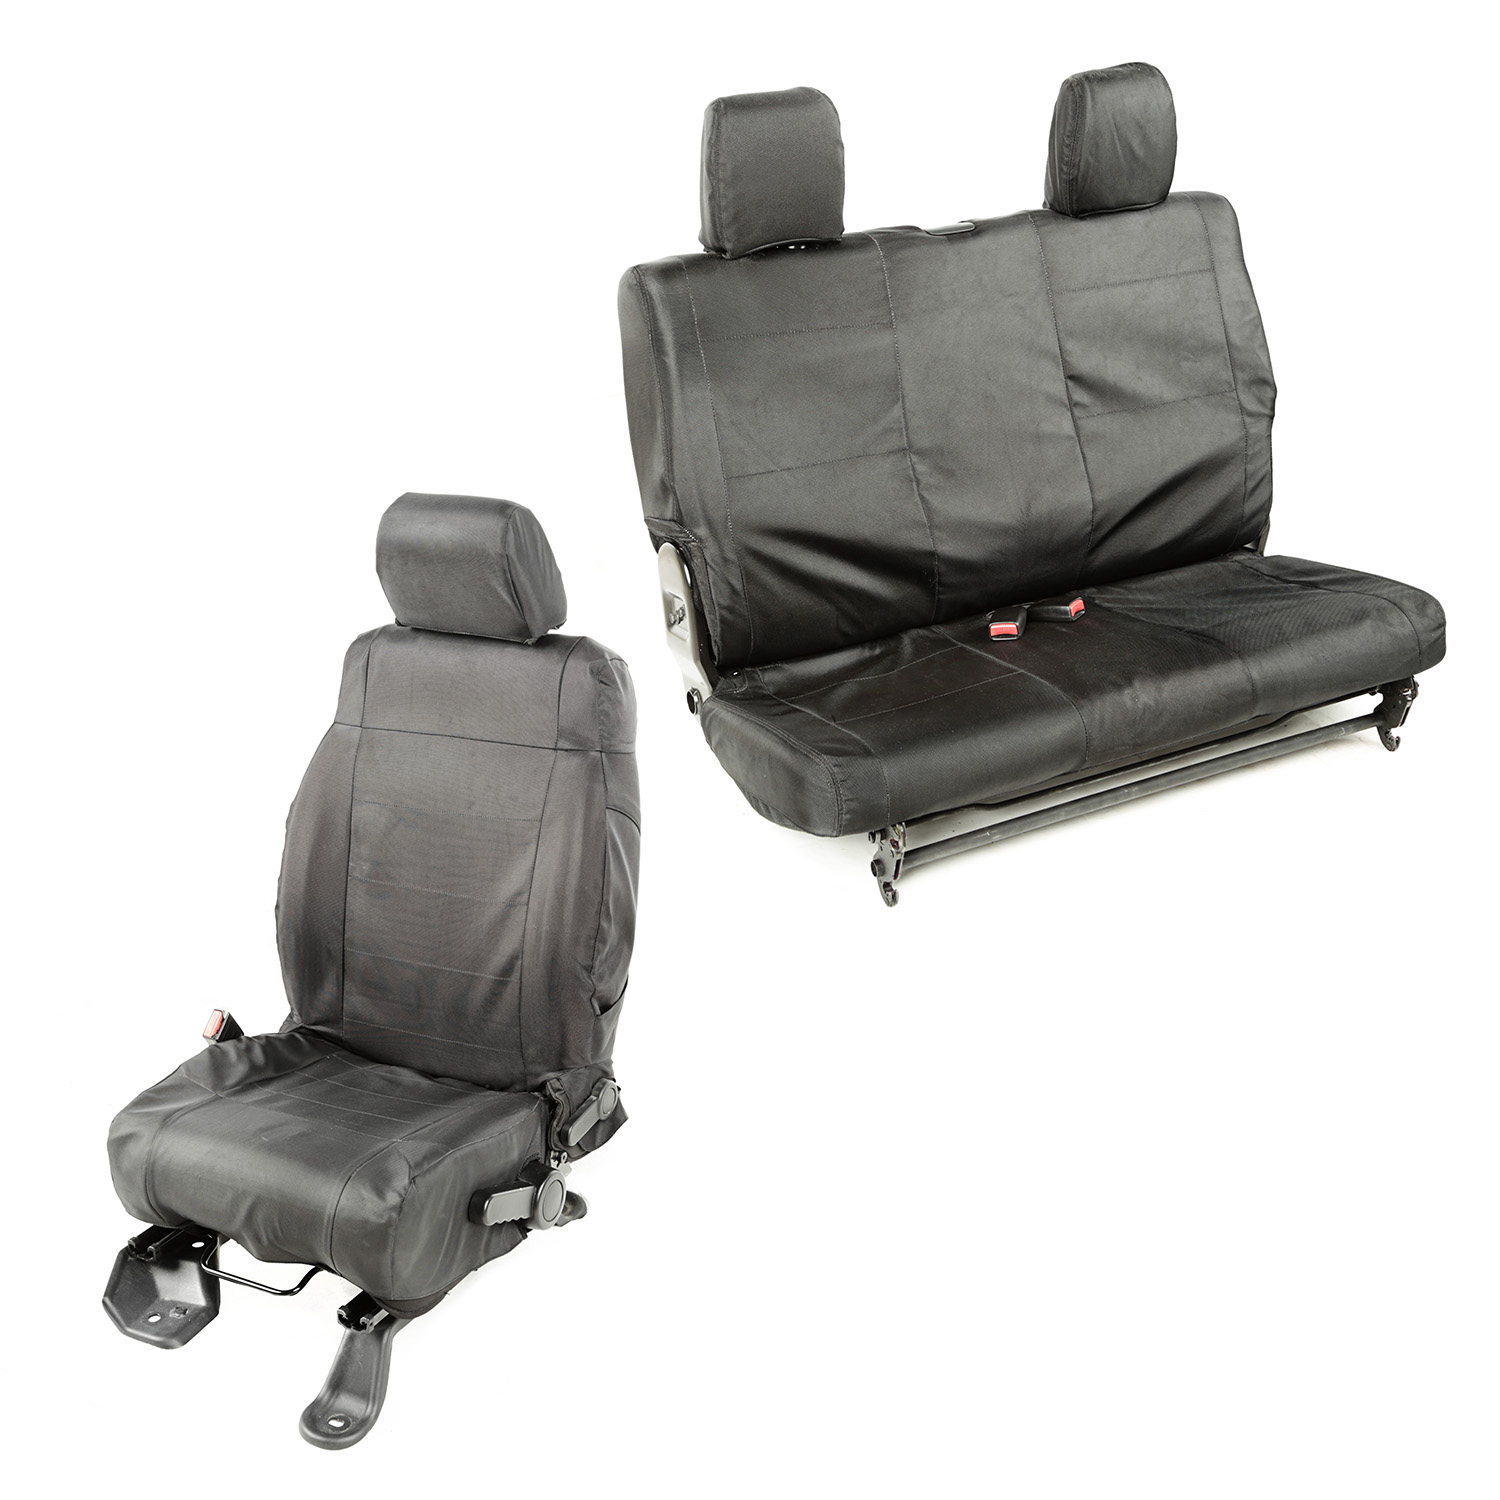 Rugged Ridge Ballistic Seat Cover Set Black - JK 2dr 2011+